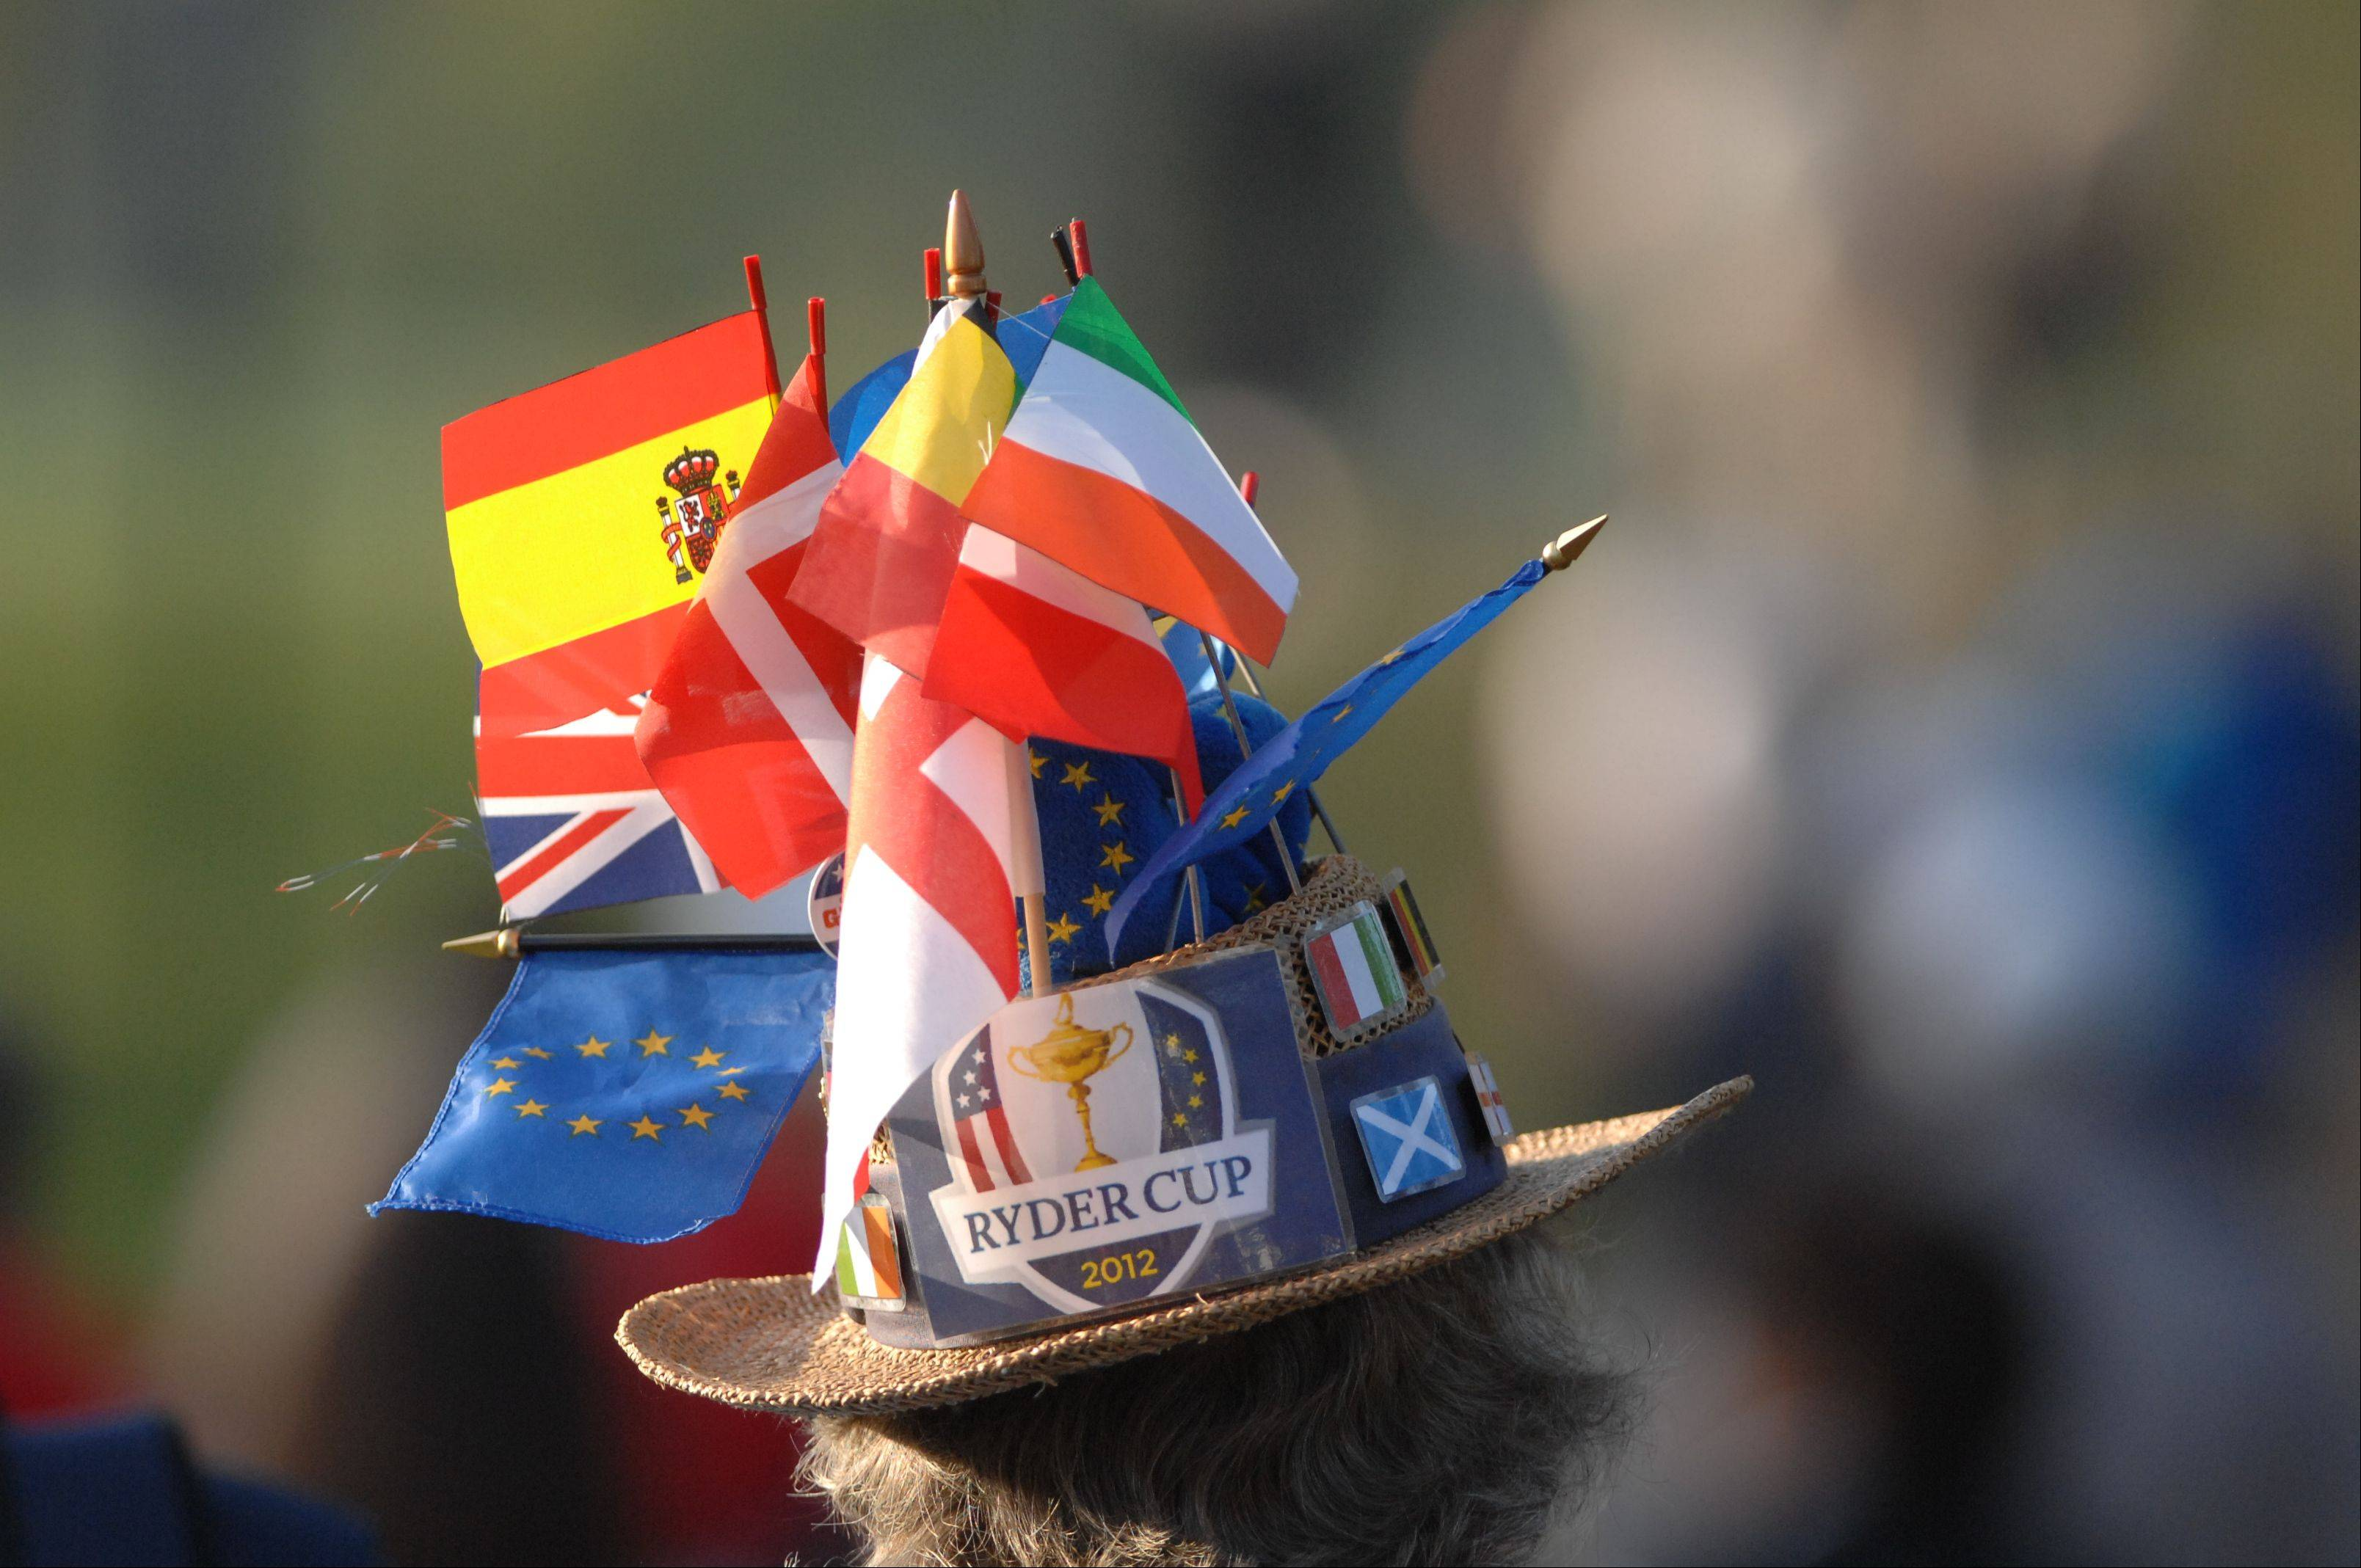 A fan of the European team has the flags of many European countries in his has as a show of support for their team during day 2 of the 2012 Ryder Cup at Medinah Country Club.